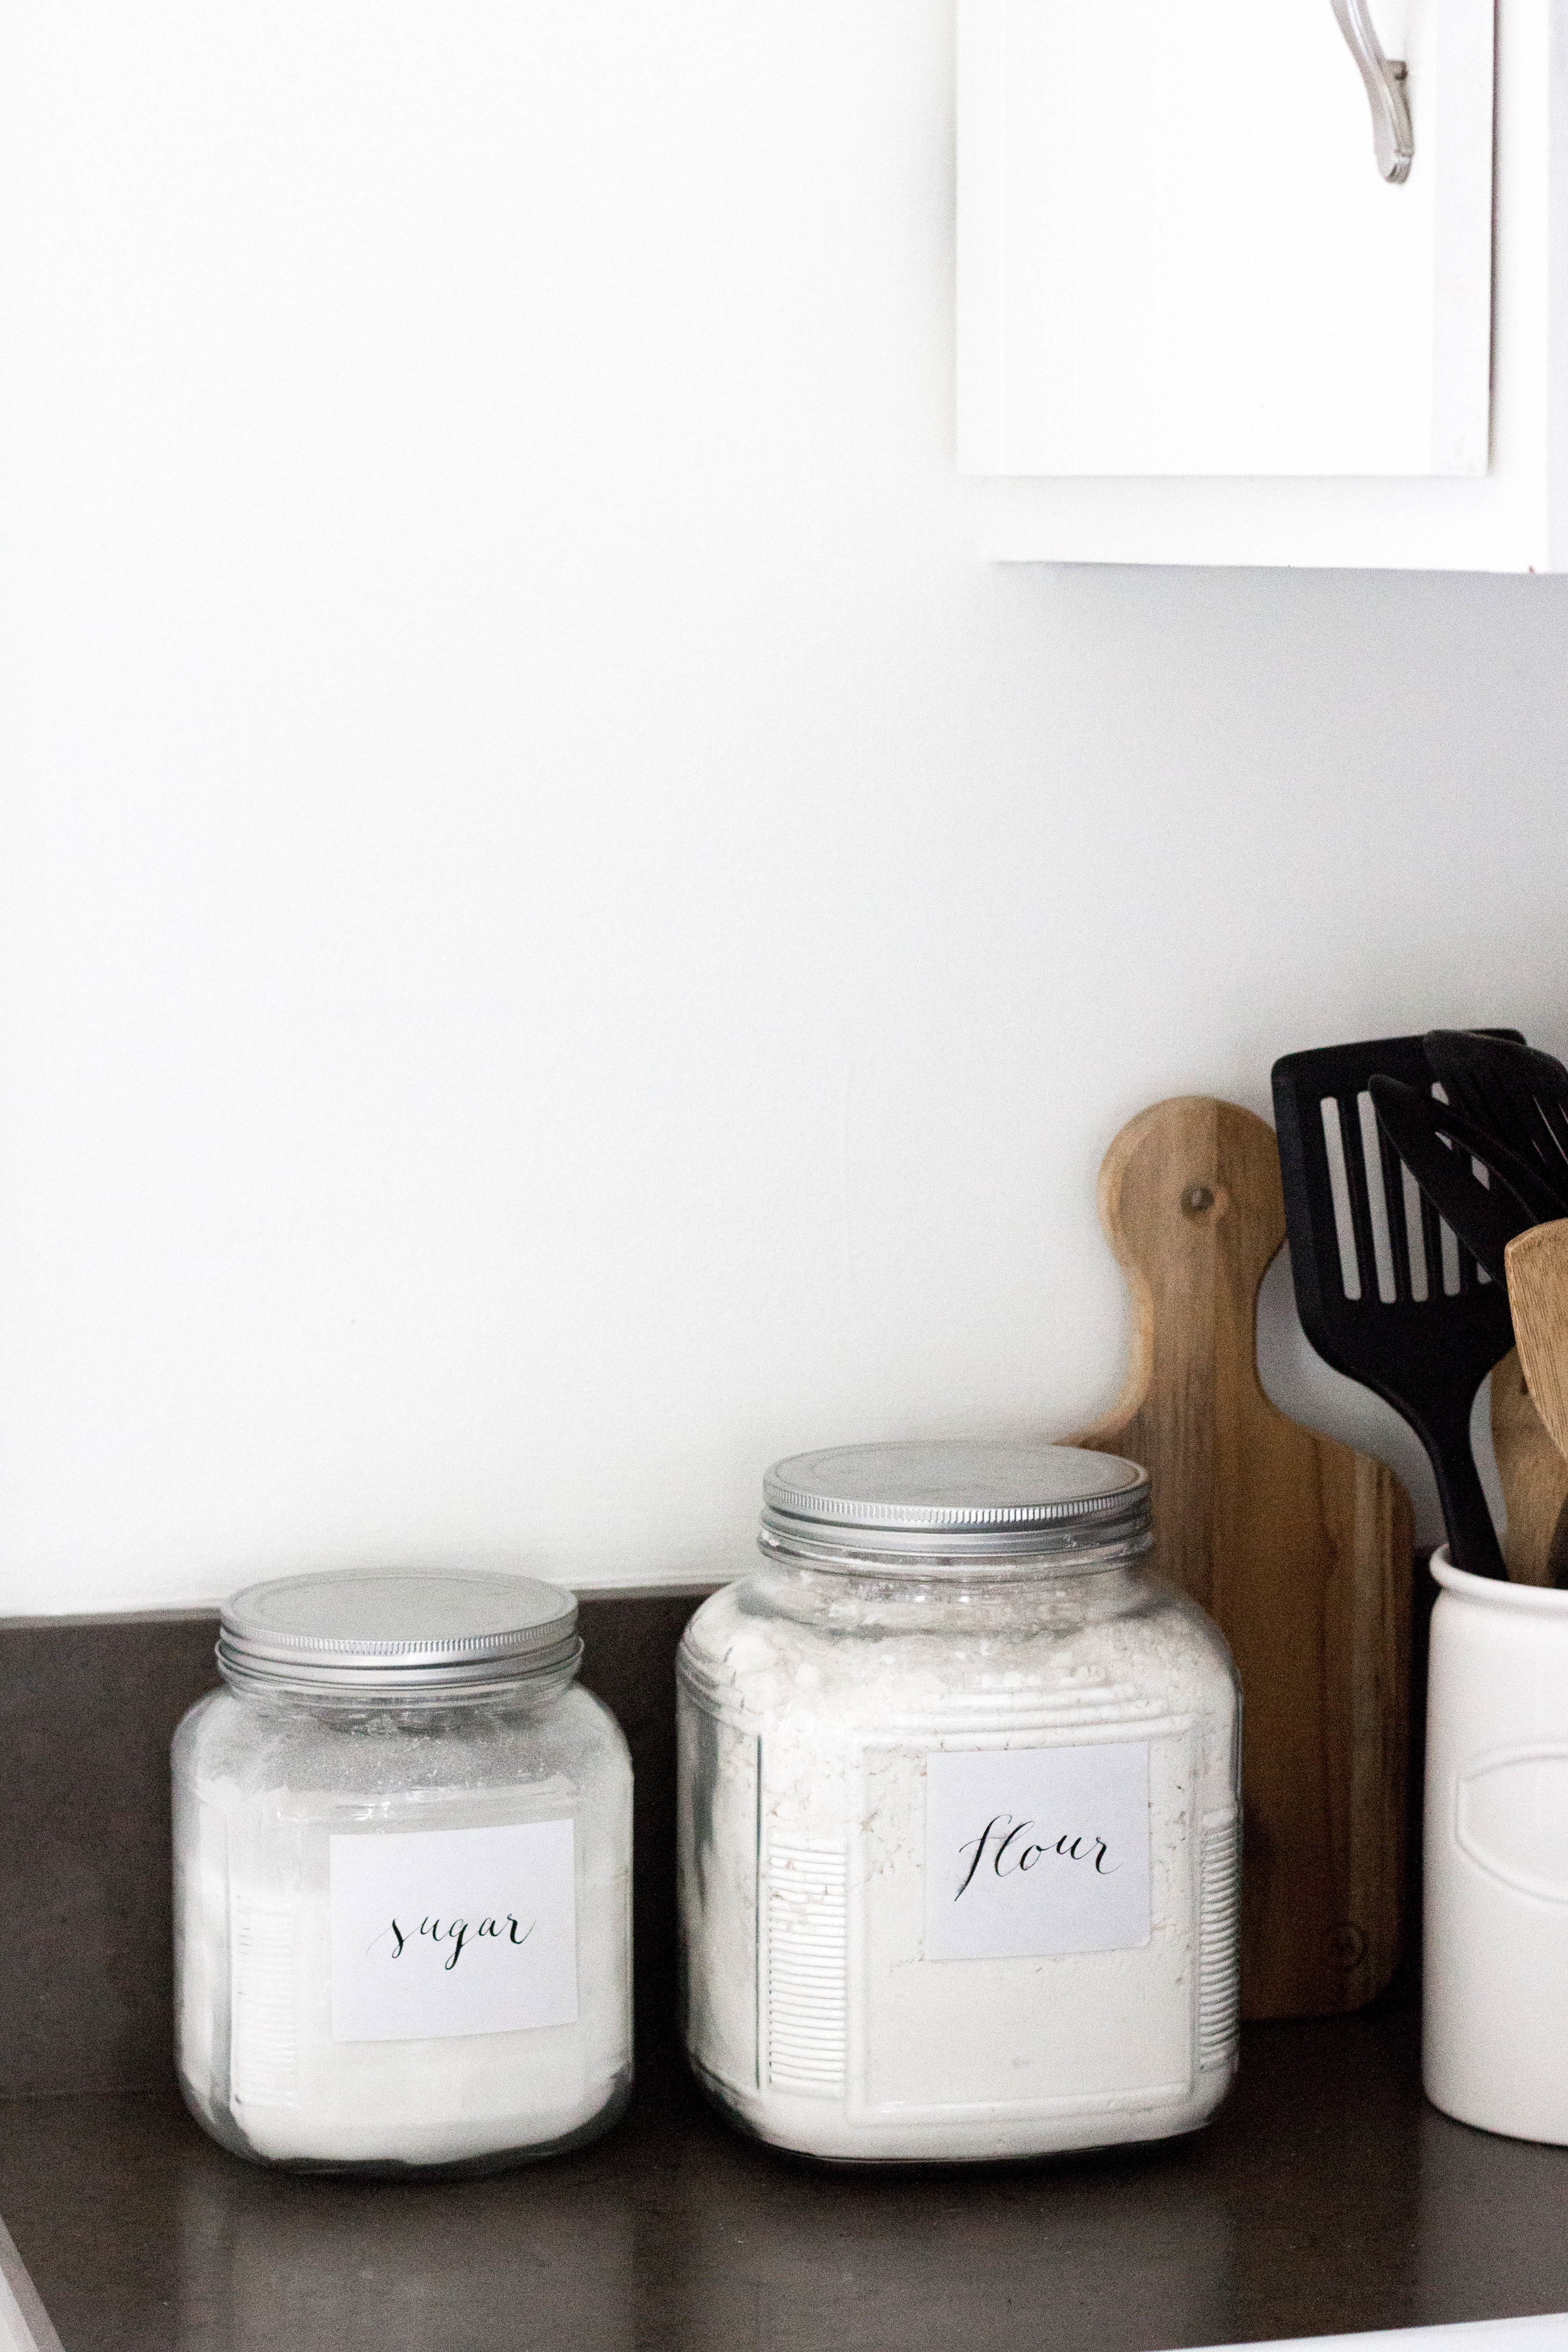 Pantry Jar Labels in Modern Calligraphy - True North Paper Co.